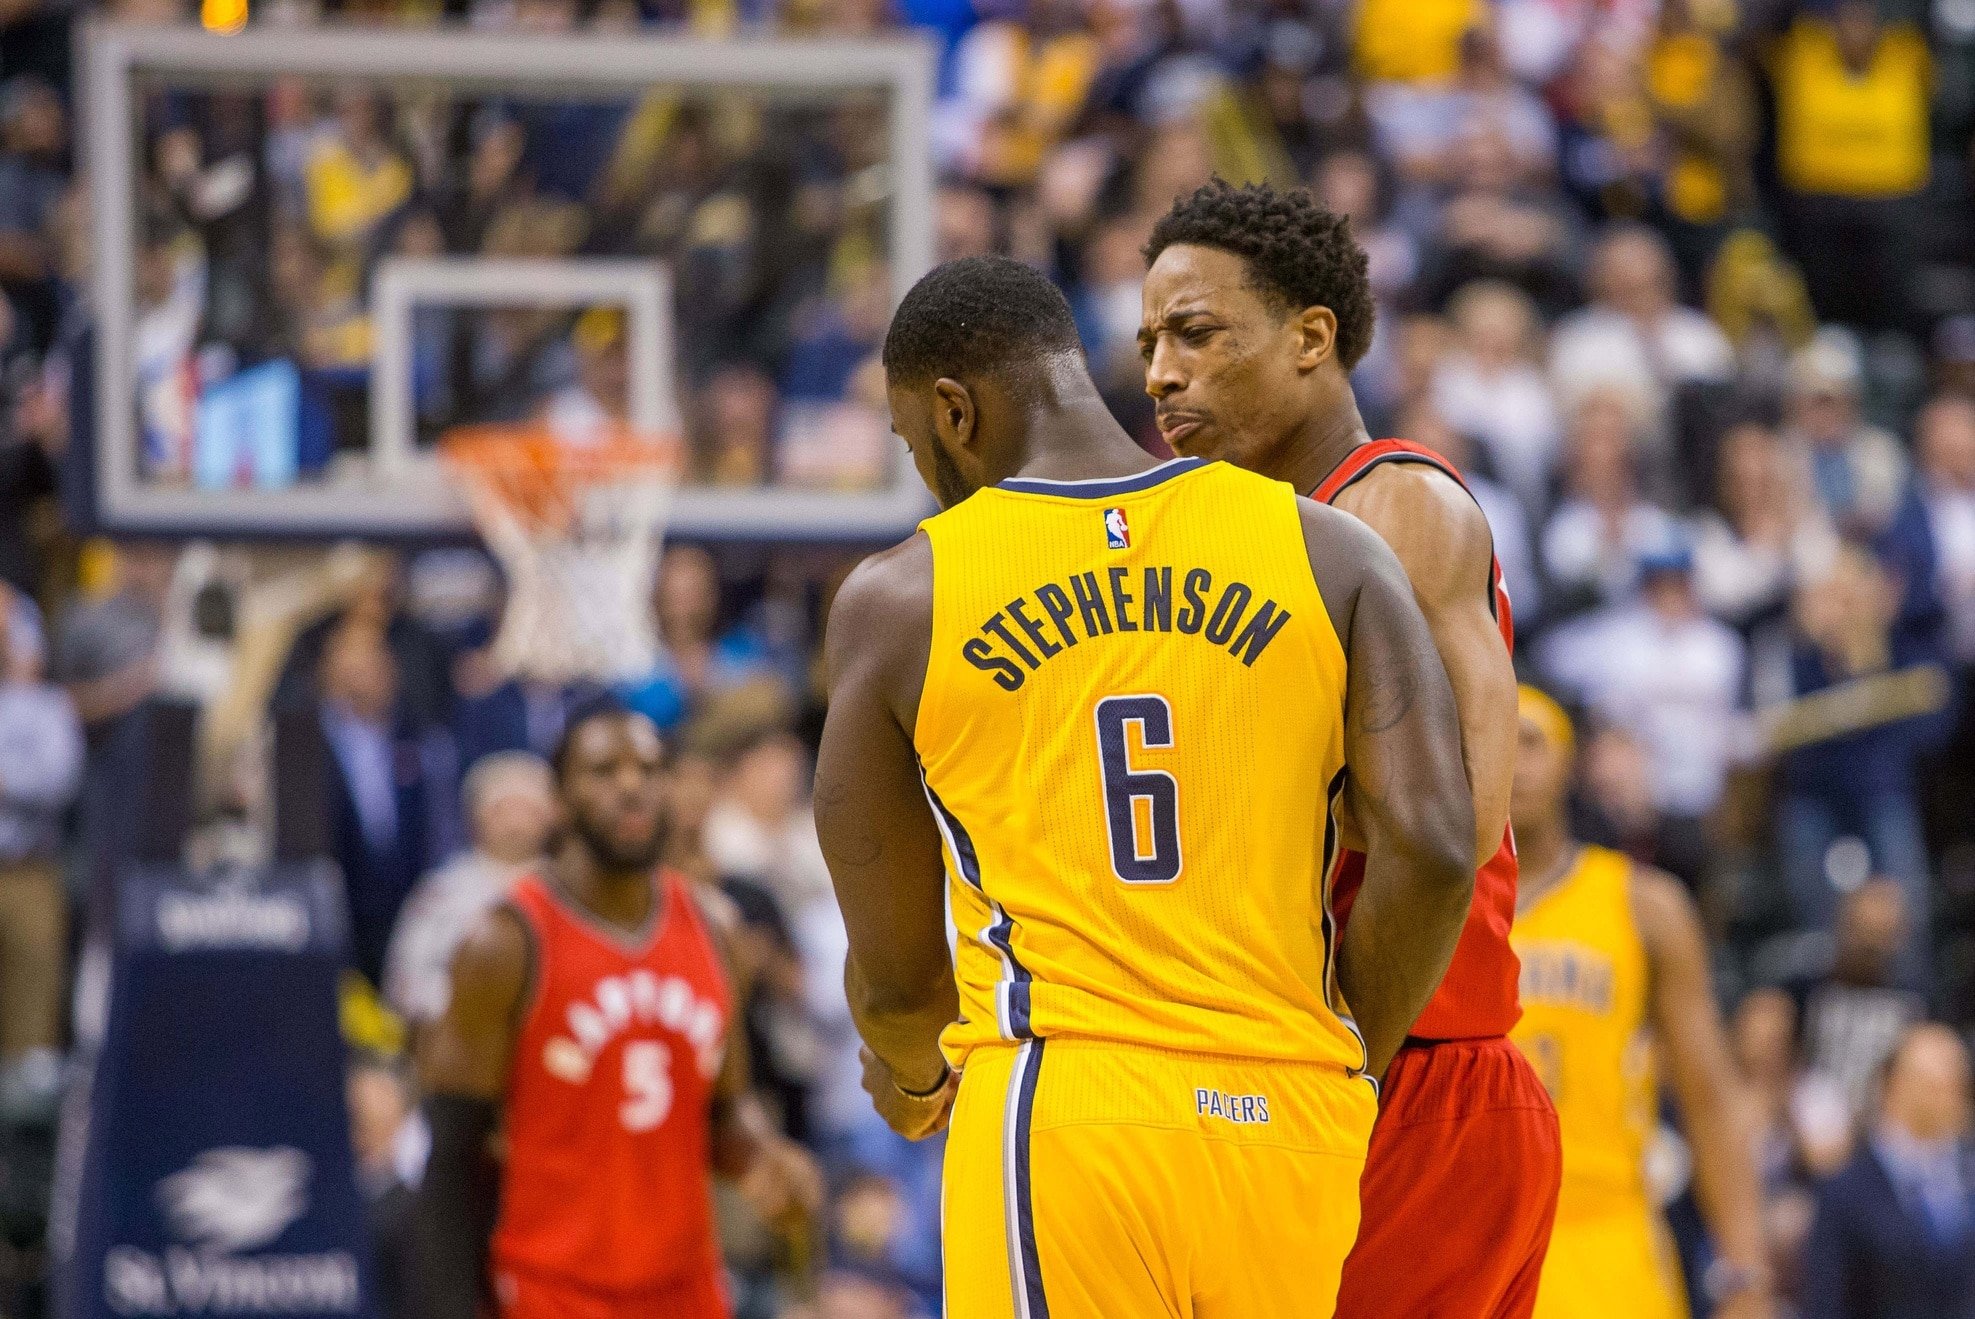 Caption: Apr 4, 2017; Indianapolis, IN, USA; Toronto Raptors guard DeMar DeRozan (10) gets into an altercation with Indiana Pacers guard Lance Stephenson (6) in the second half of the game at Bankers Life Fieldhouse. The Pacers beat the Raptors 108-90. Mandatory Credit: Trevor Ruszkowski-USA TODAY Sports